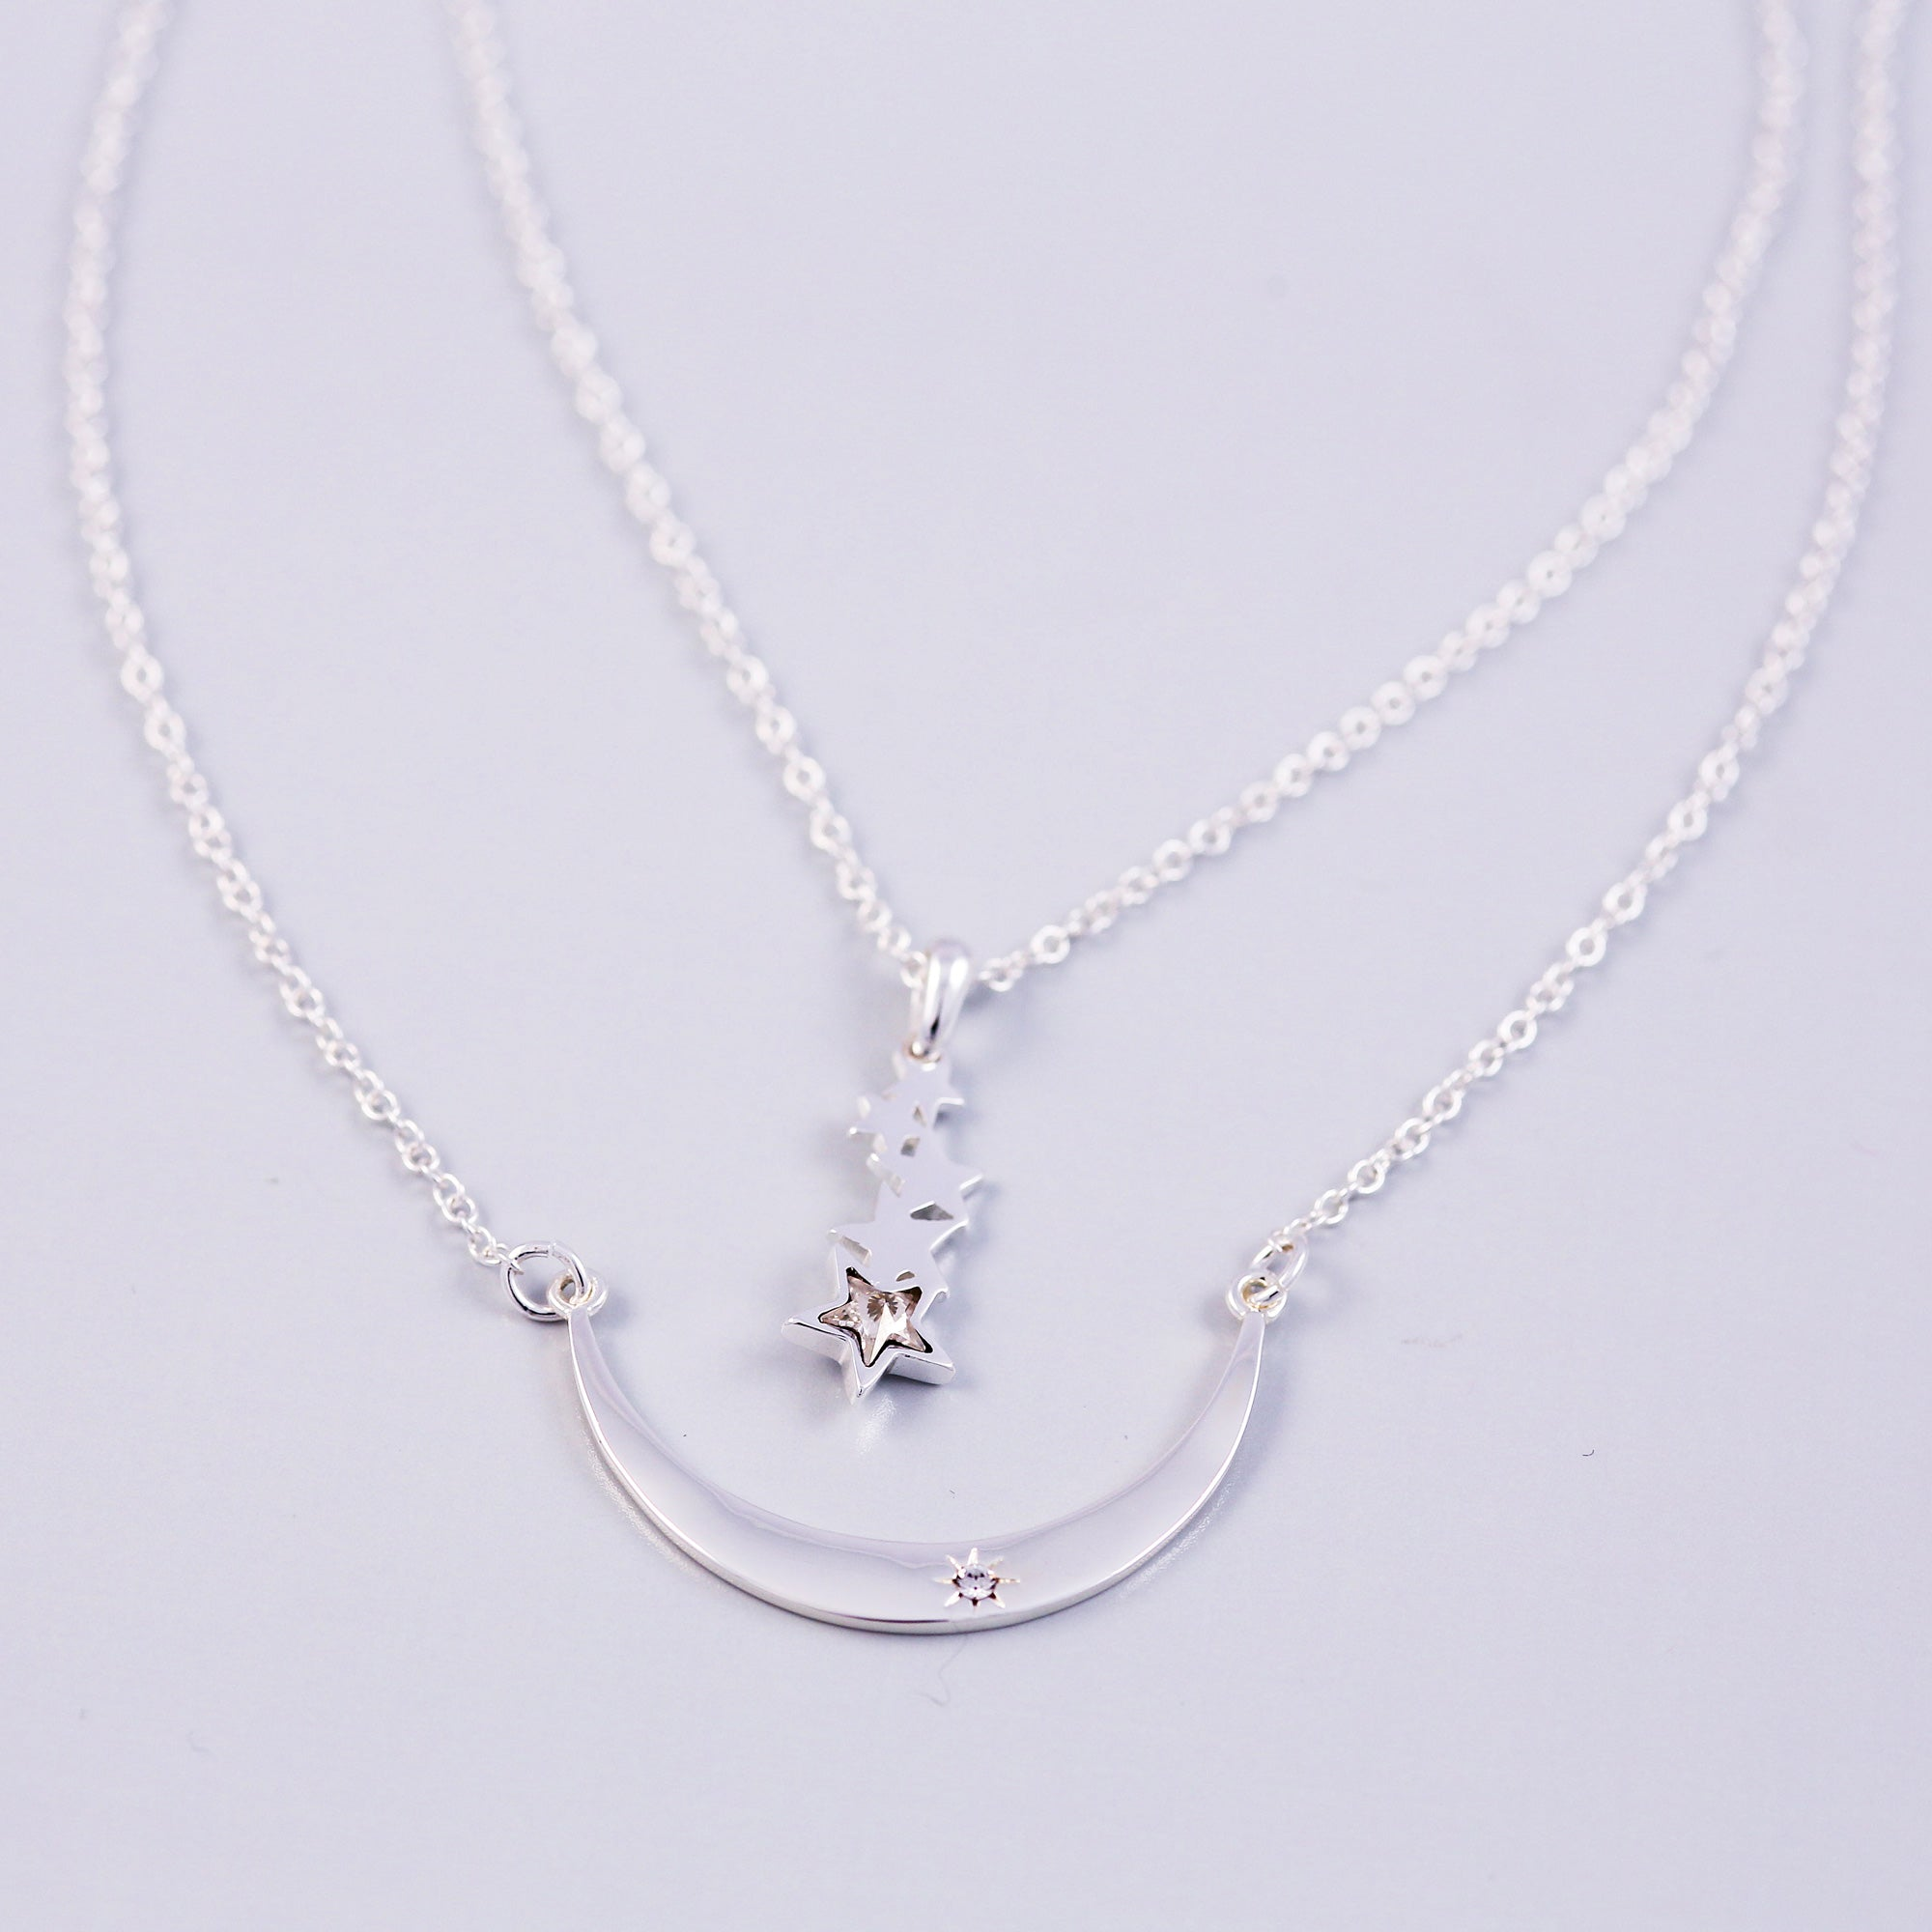 Silver Layered Moon & Star Shower Necklace